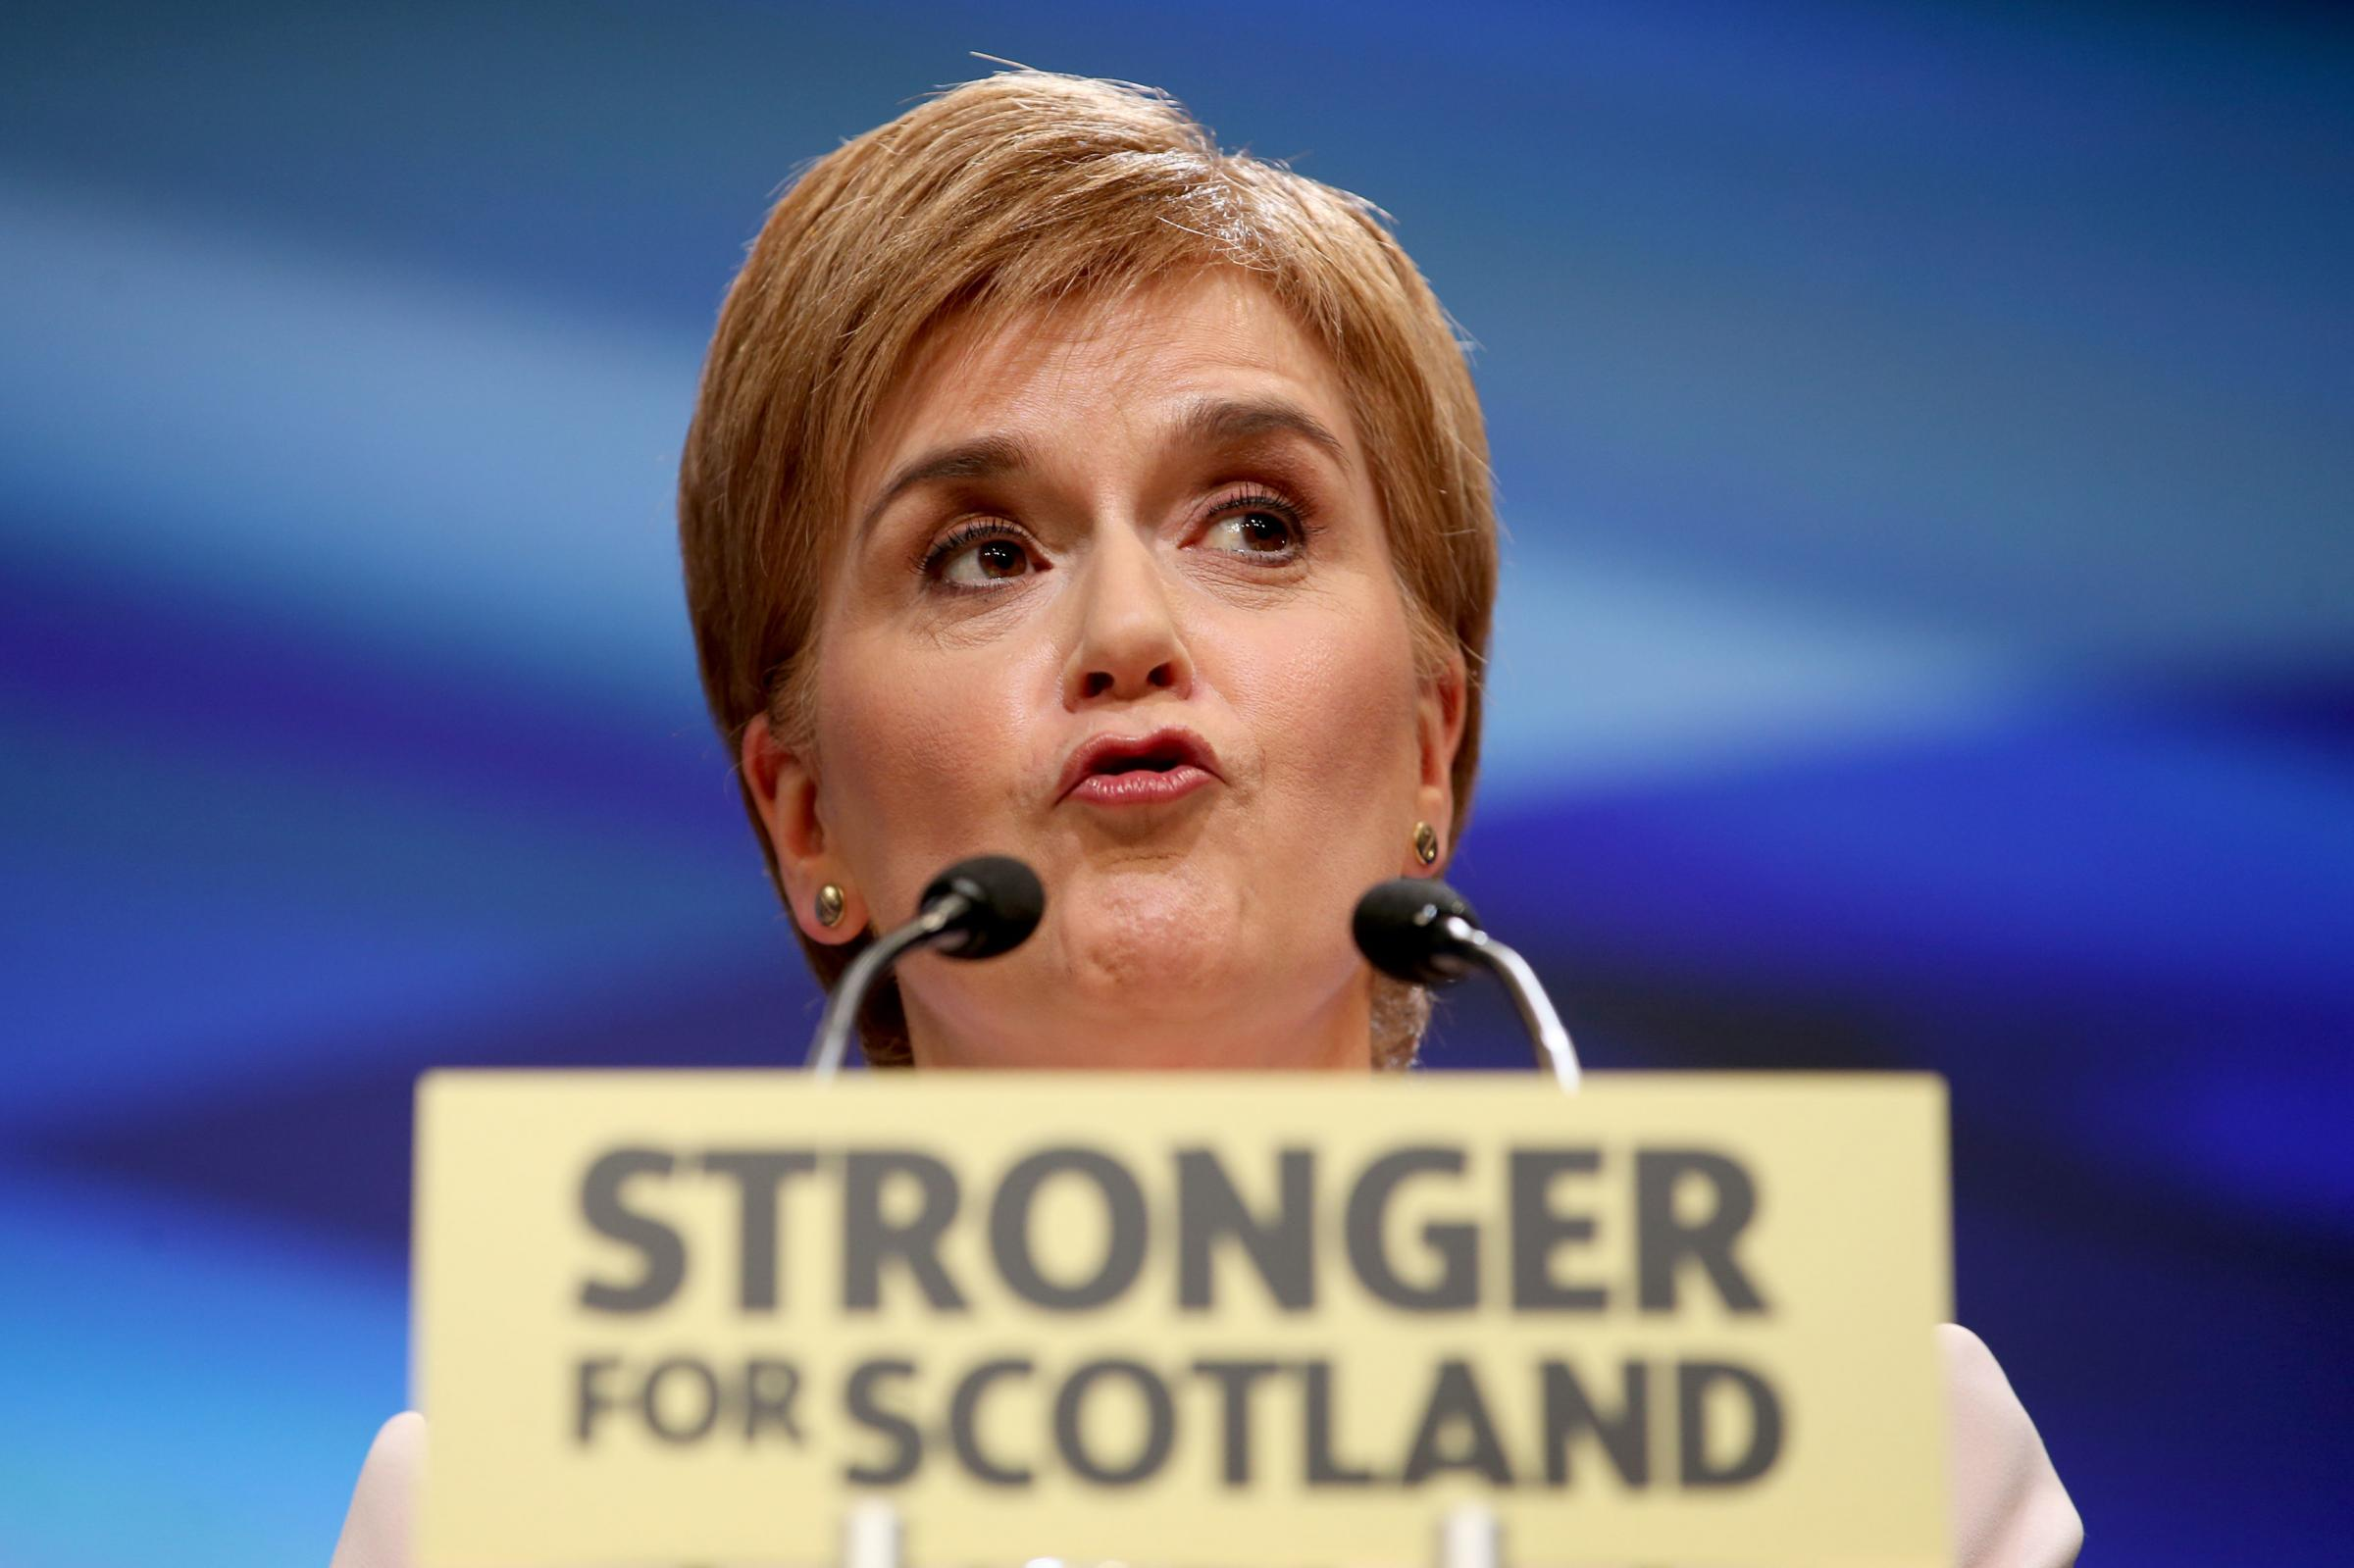 First Minister Nicola Sturgeon delivers her keynote speech to delegates at the SNP's spring conference at the Aberdeen Exhibition and Conference Centre (AECC), Aberdeen on Saturday.